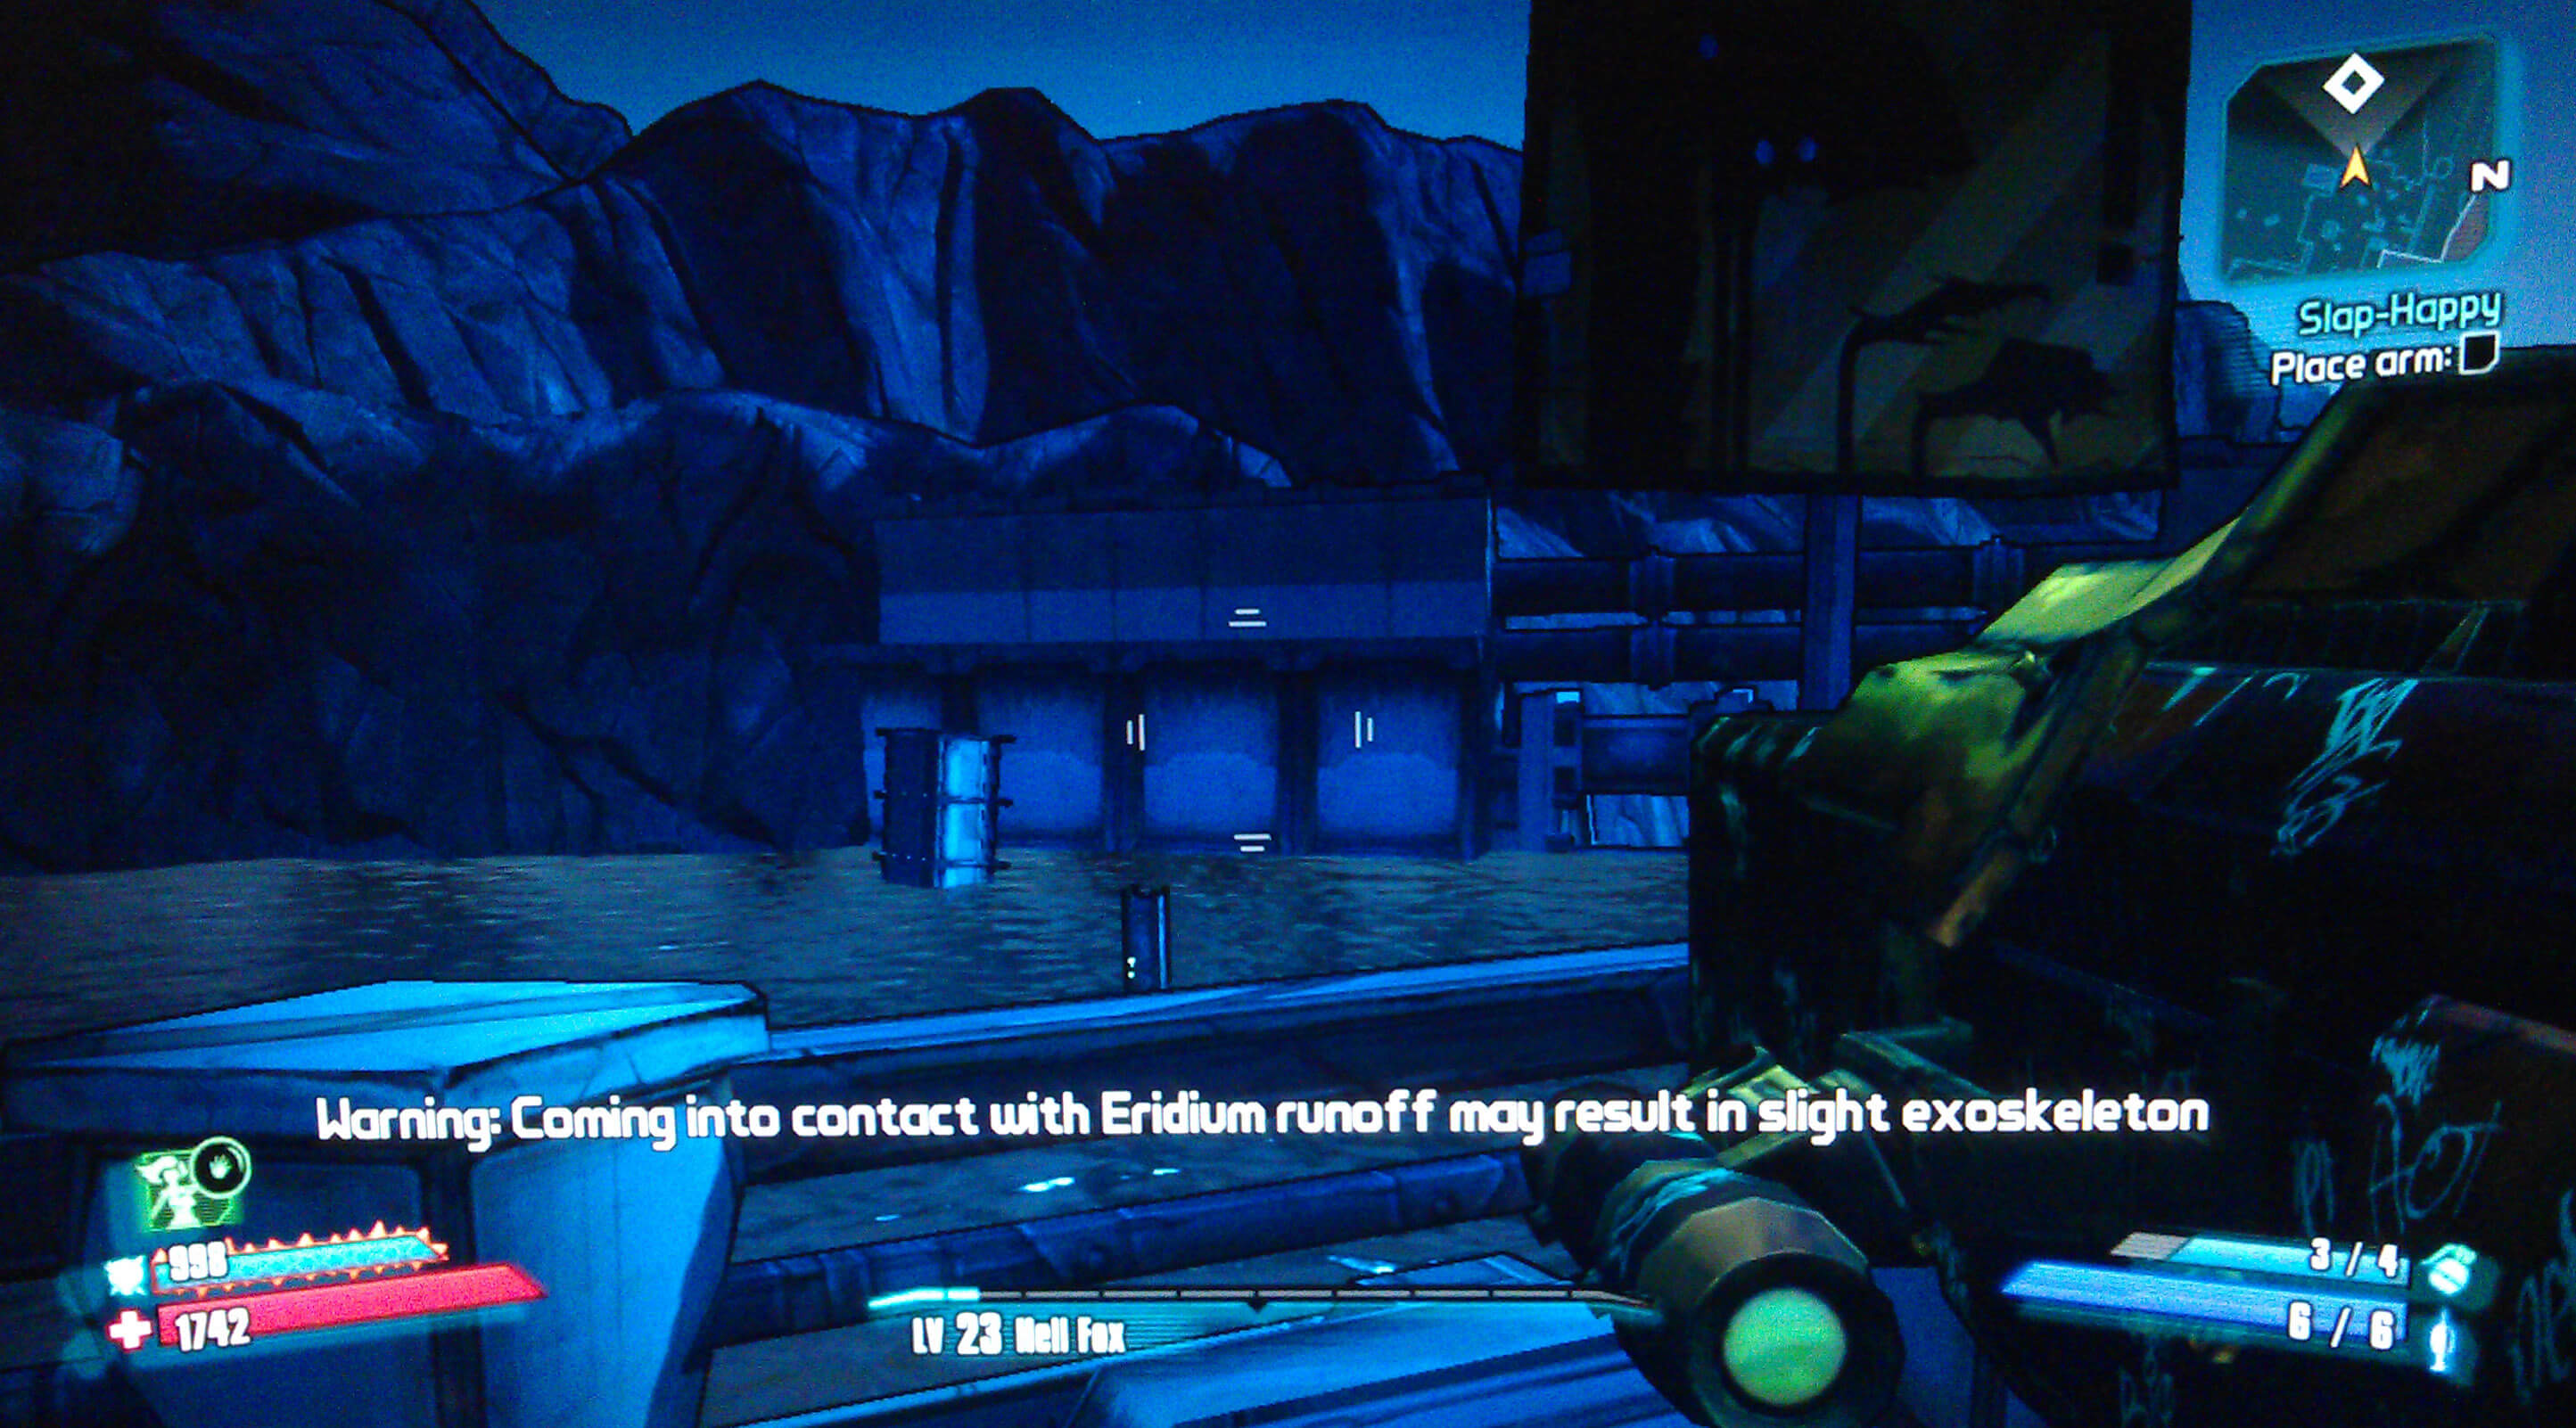 Borderlands 2 Slap-Happy Walkthrough